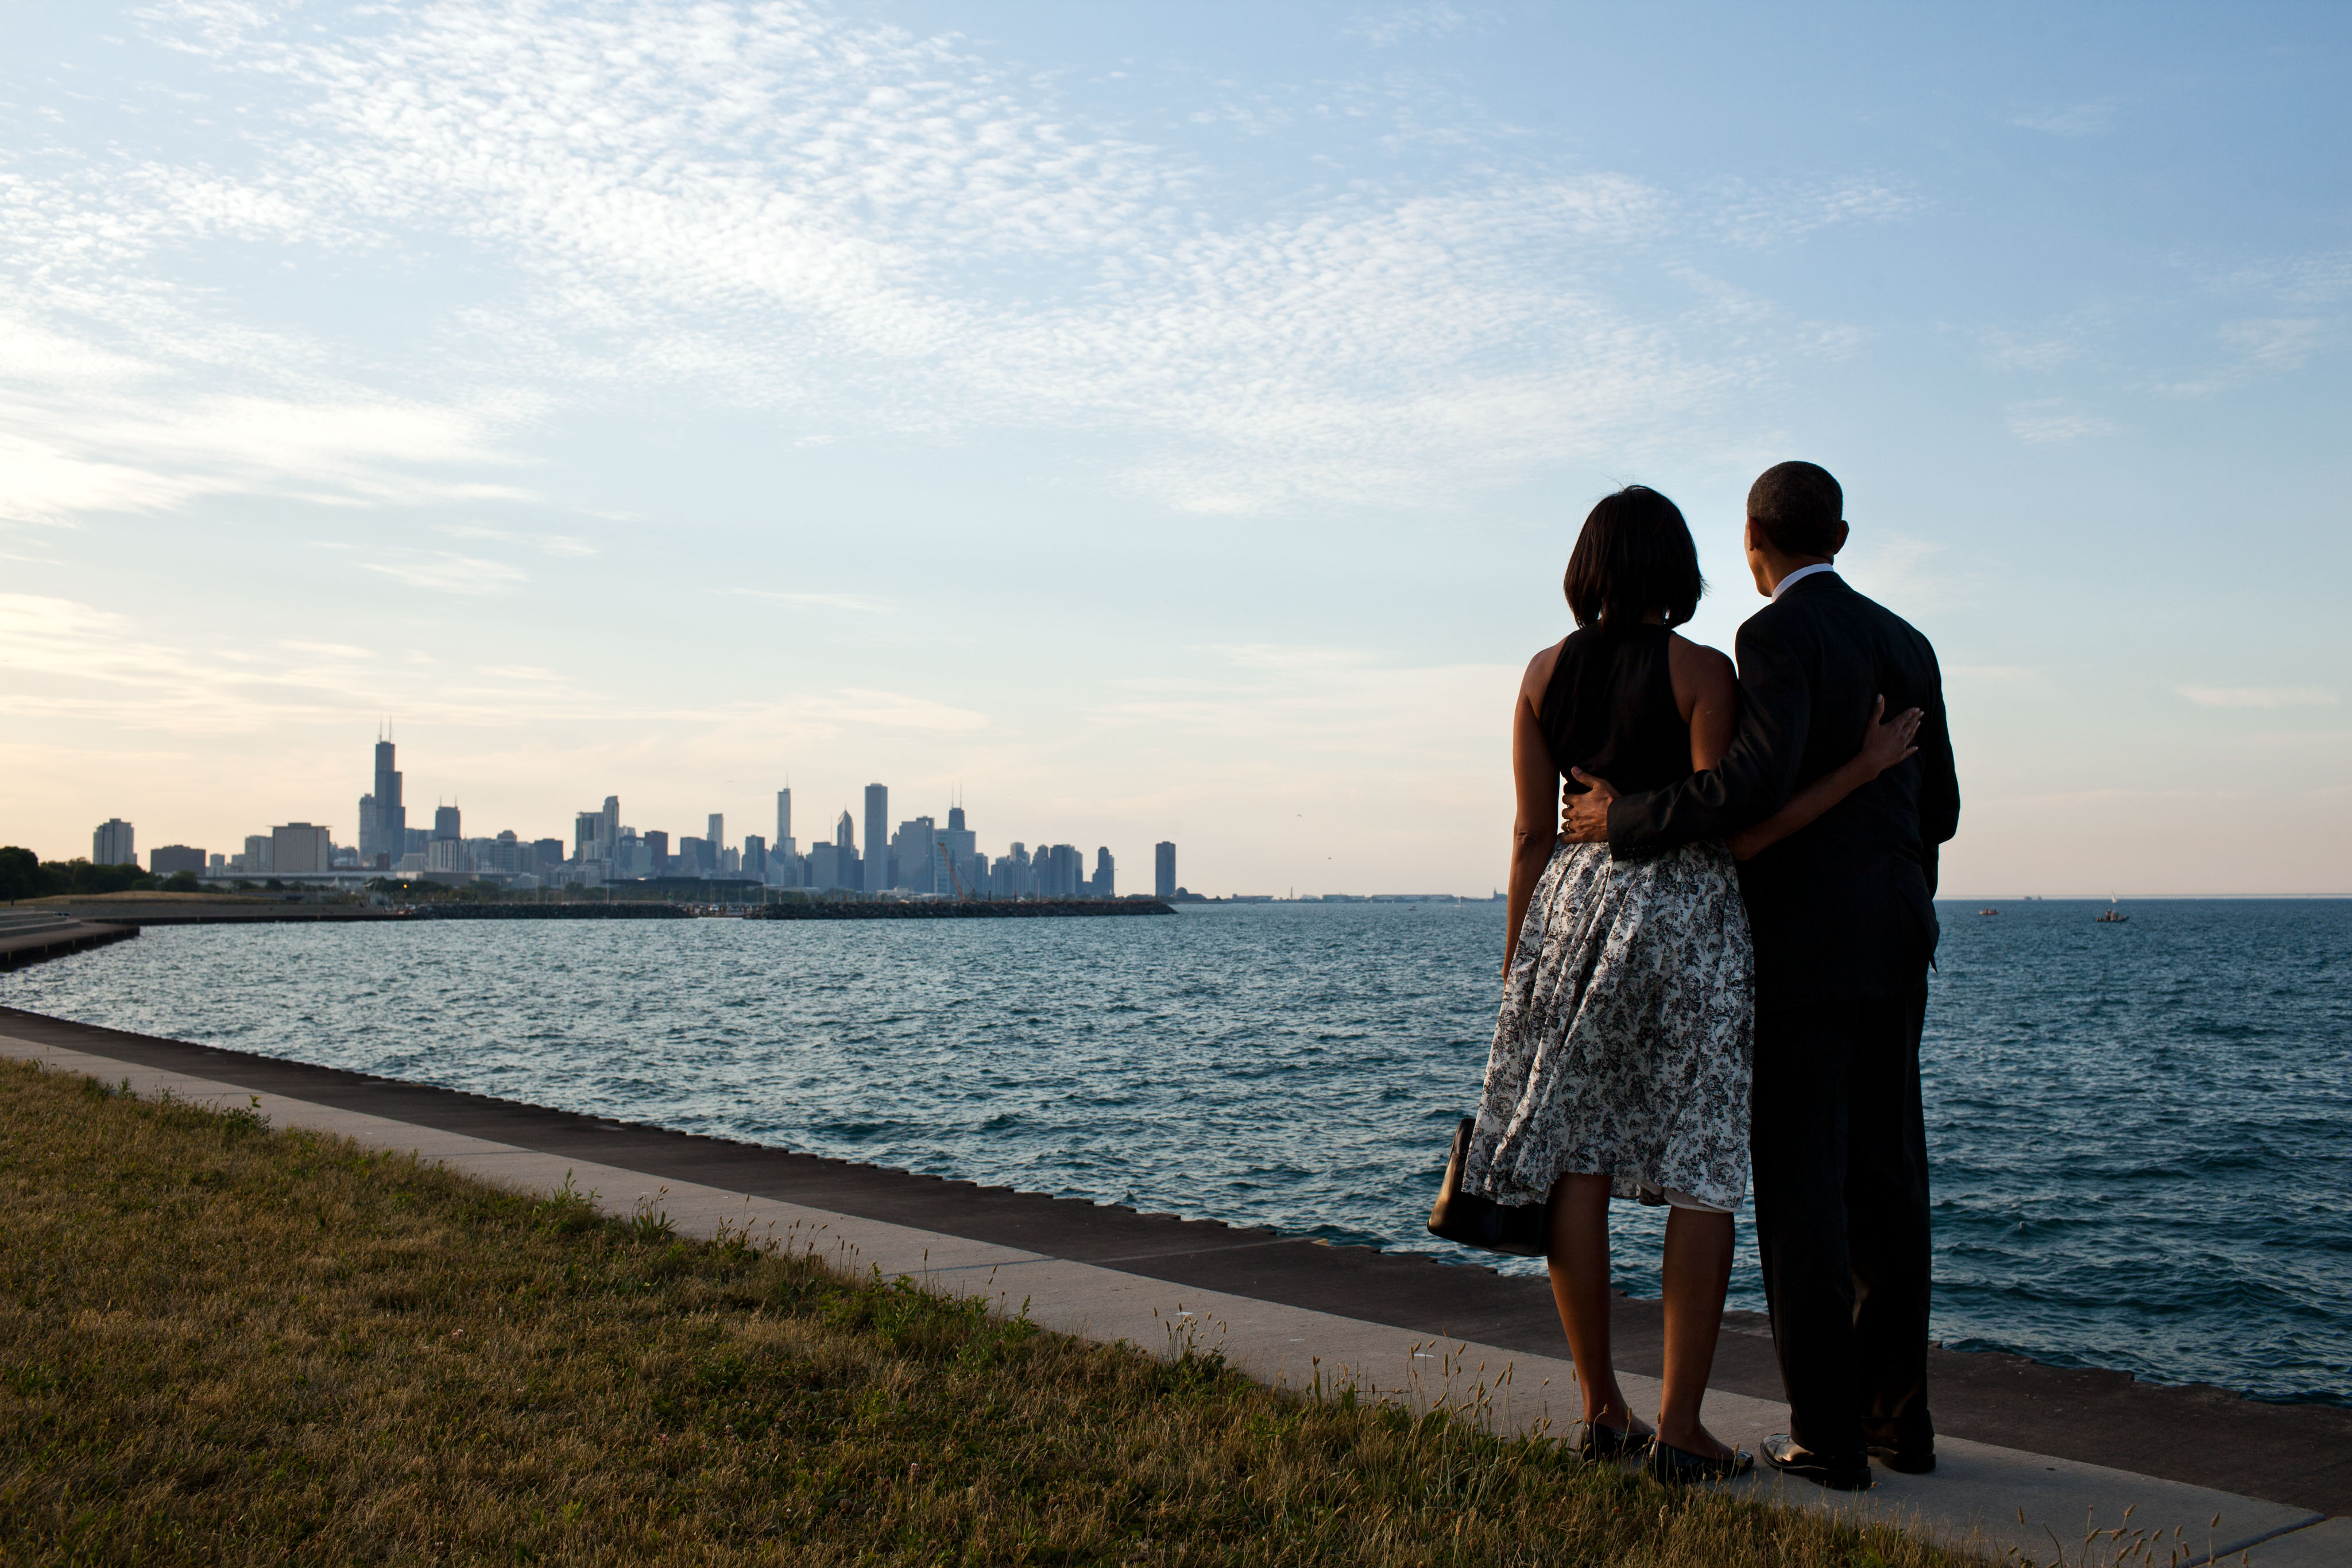 Barack_and_Michelle_Obama_looking_at_Chicago